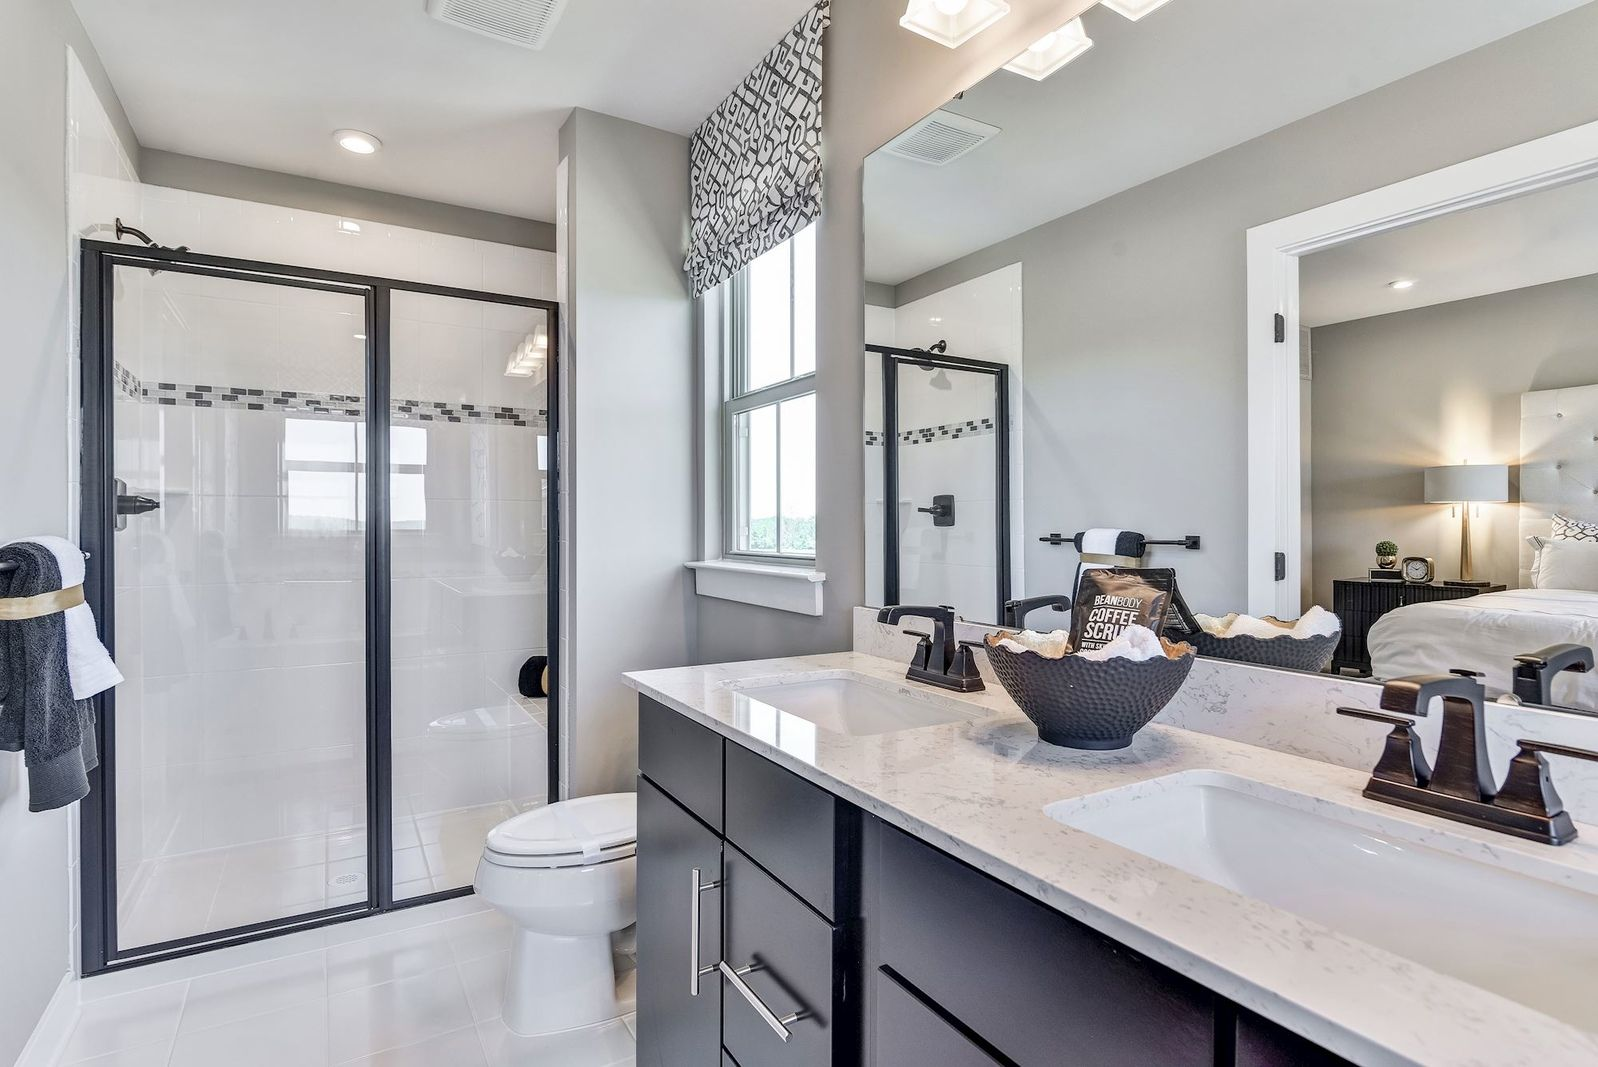 Bathroom featured in the Strauss Loft with Rooftop By Ryan Homes in Baltimore, MD